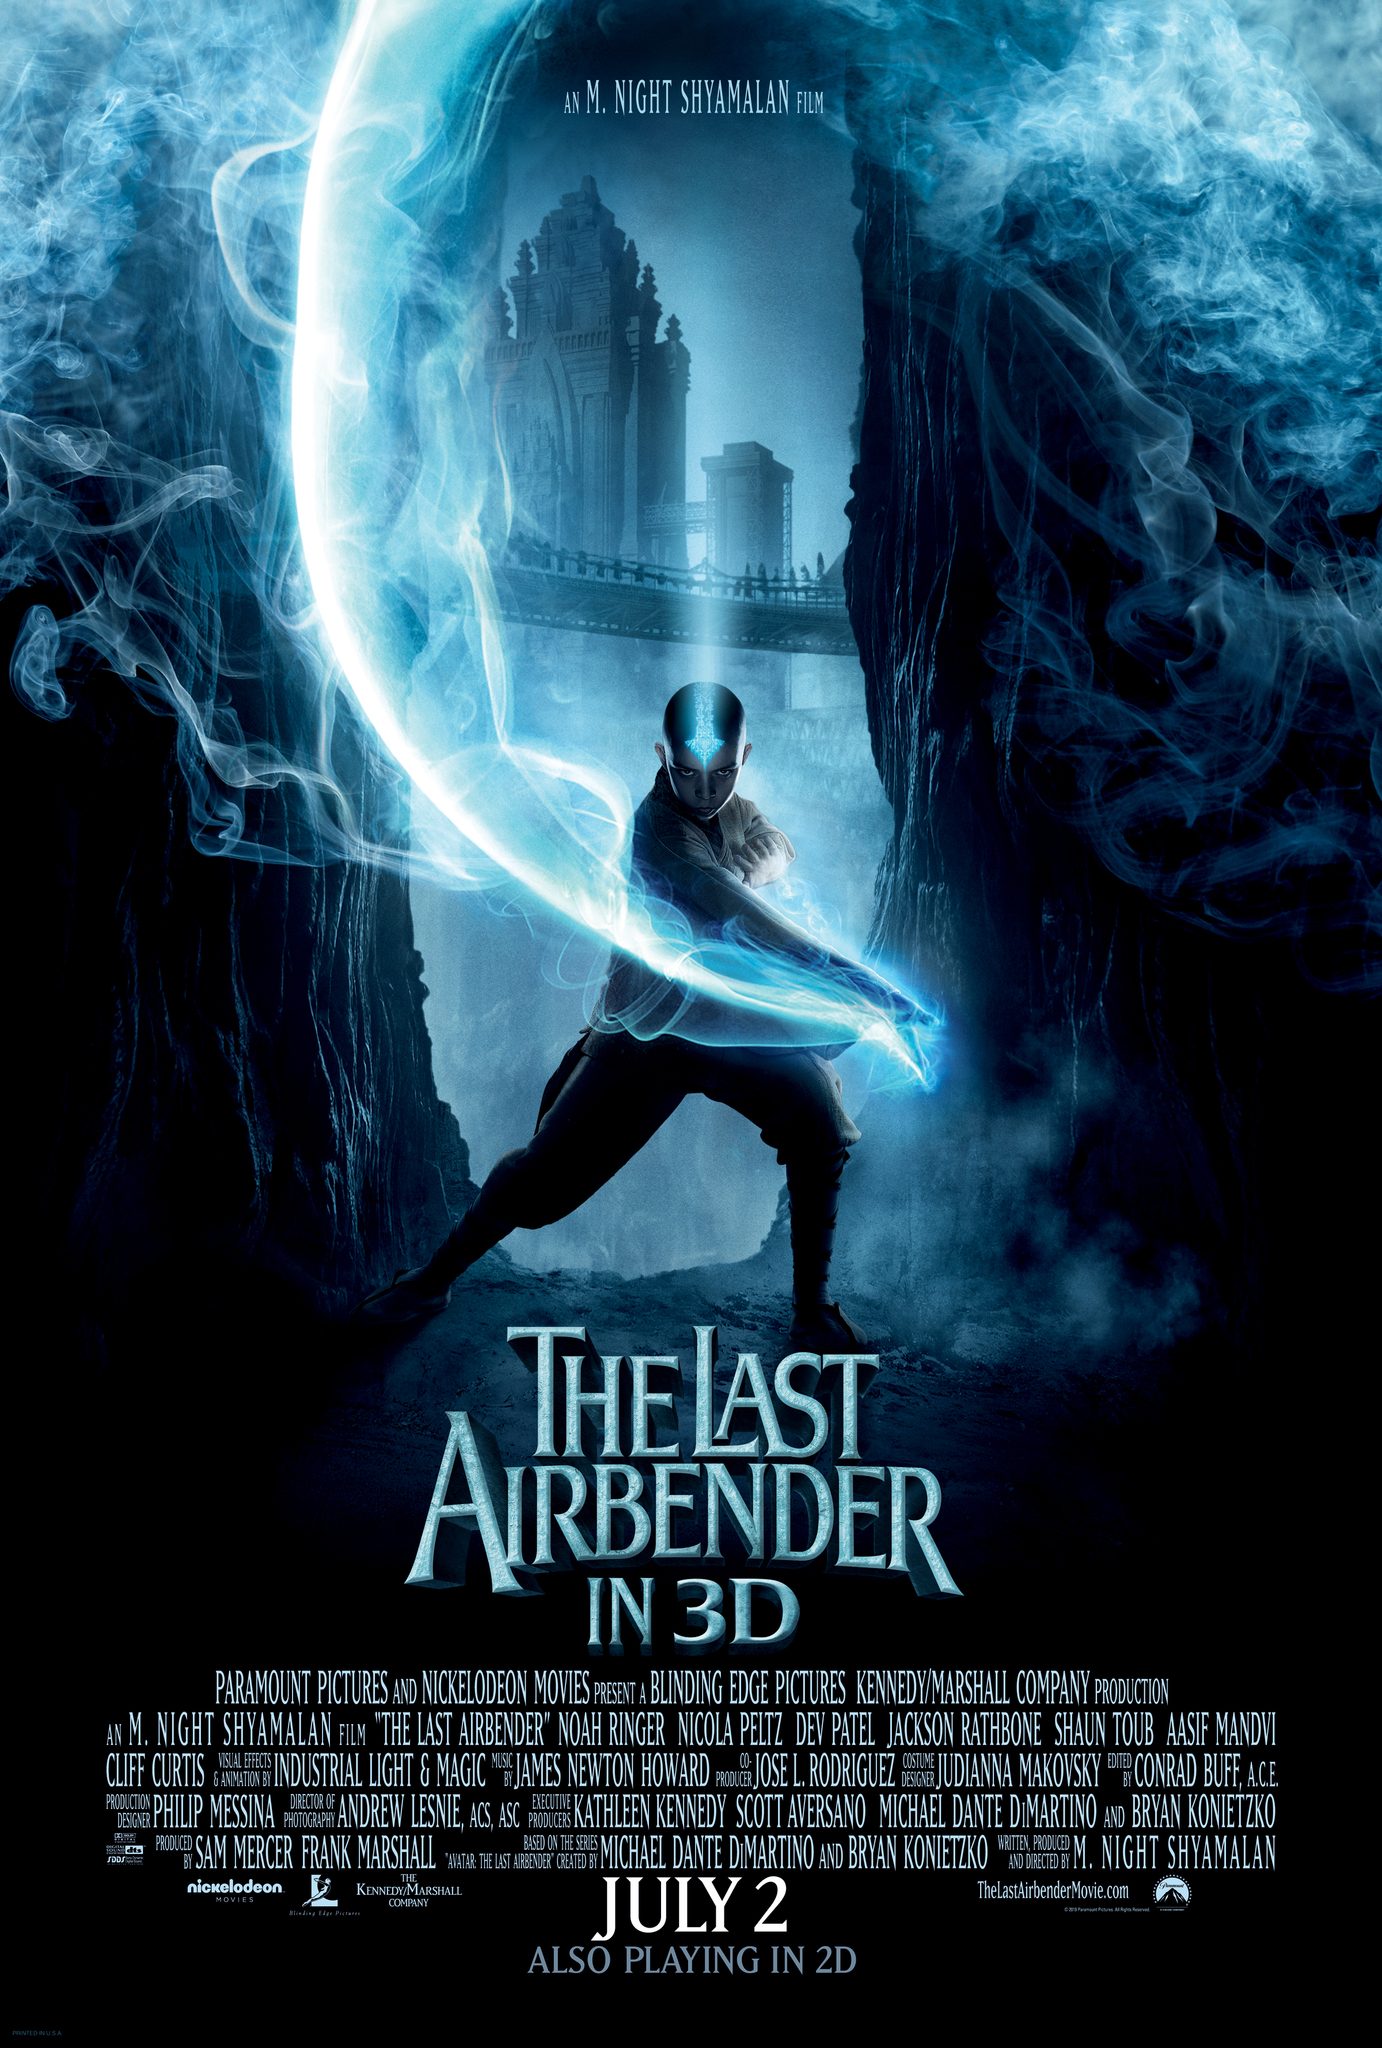 airbender movie last Avatar